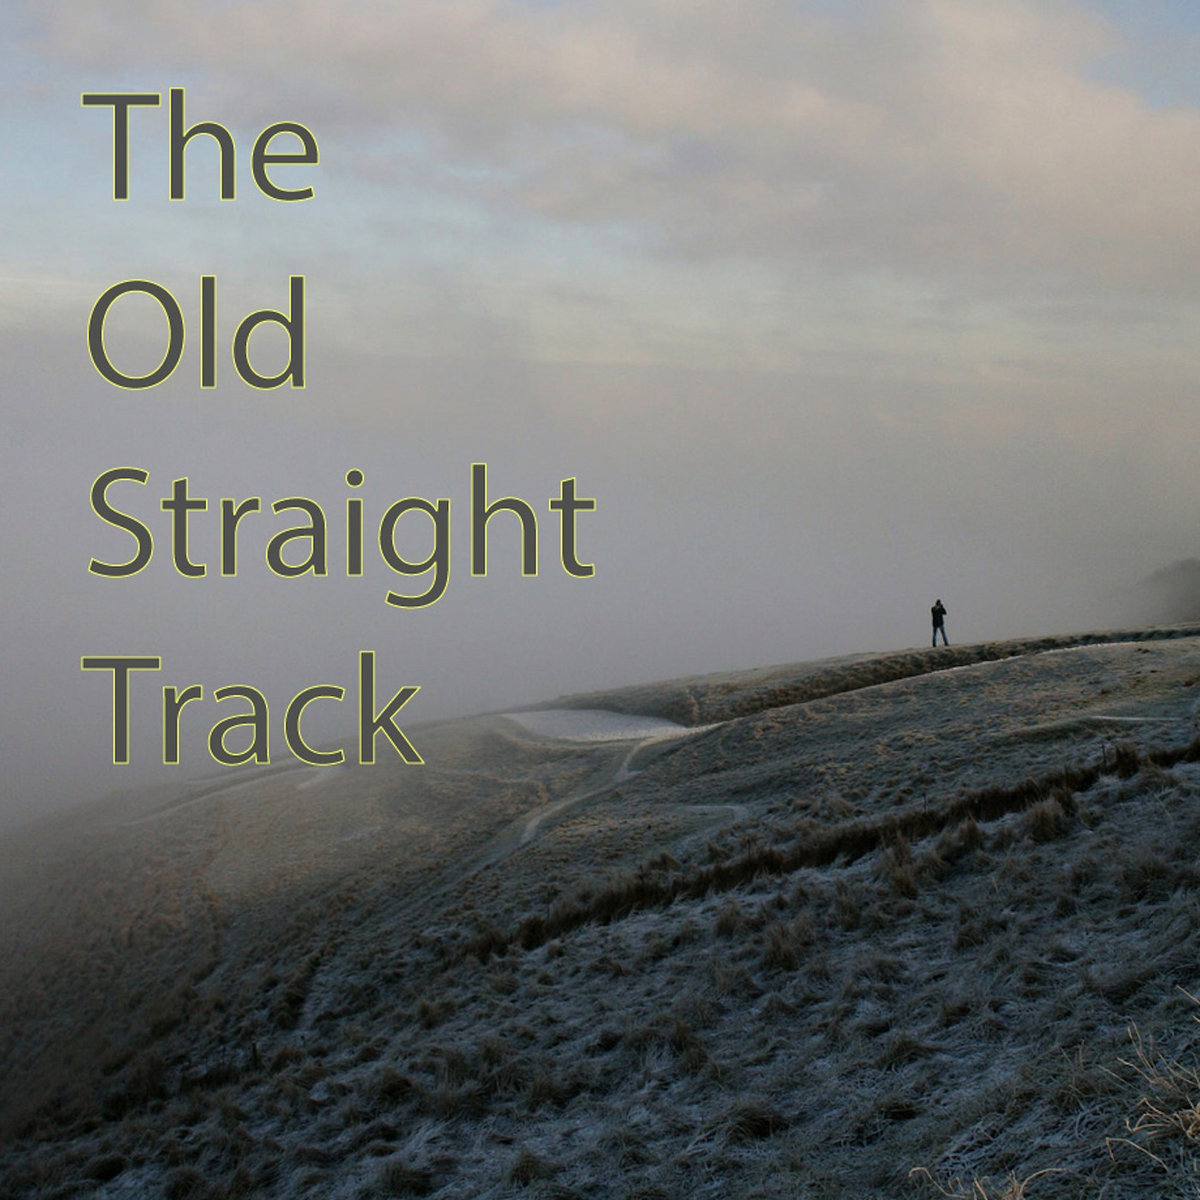 The Old Straight Track | Aaah17 Project